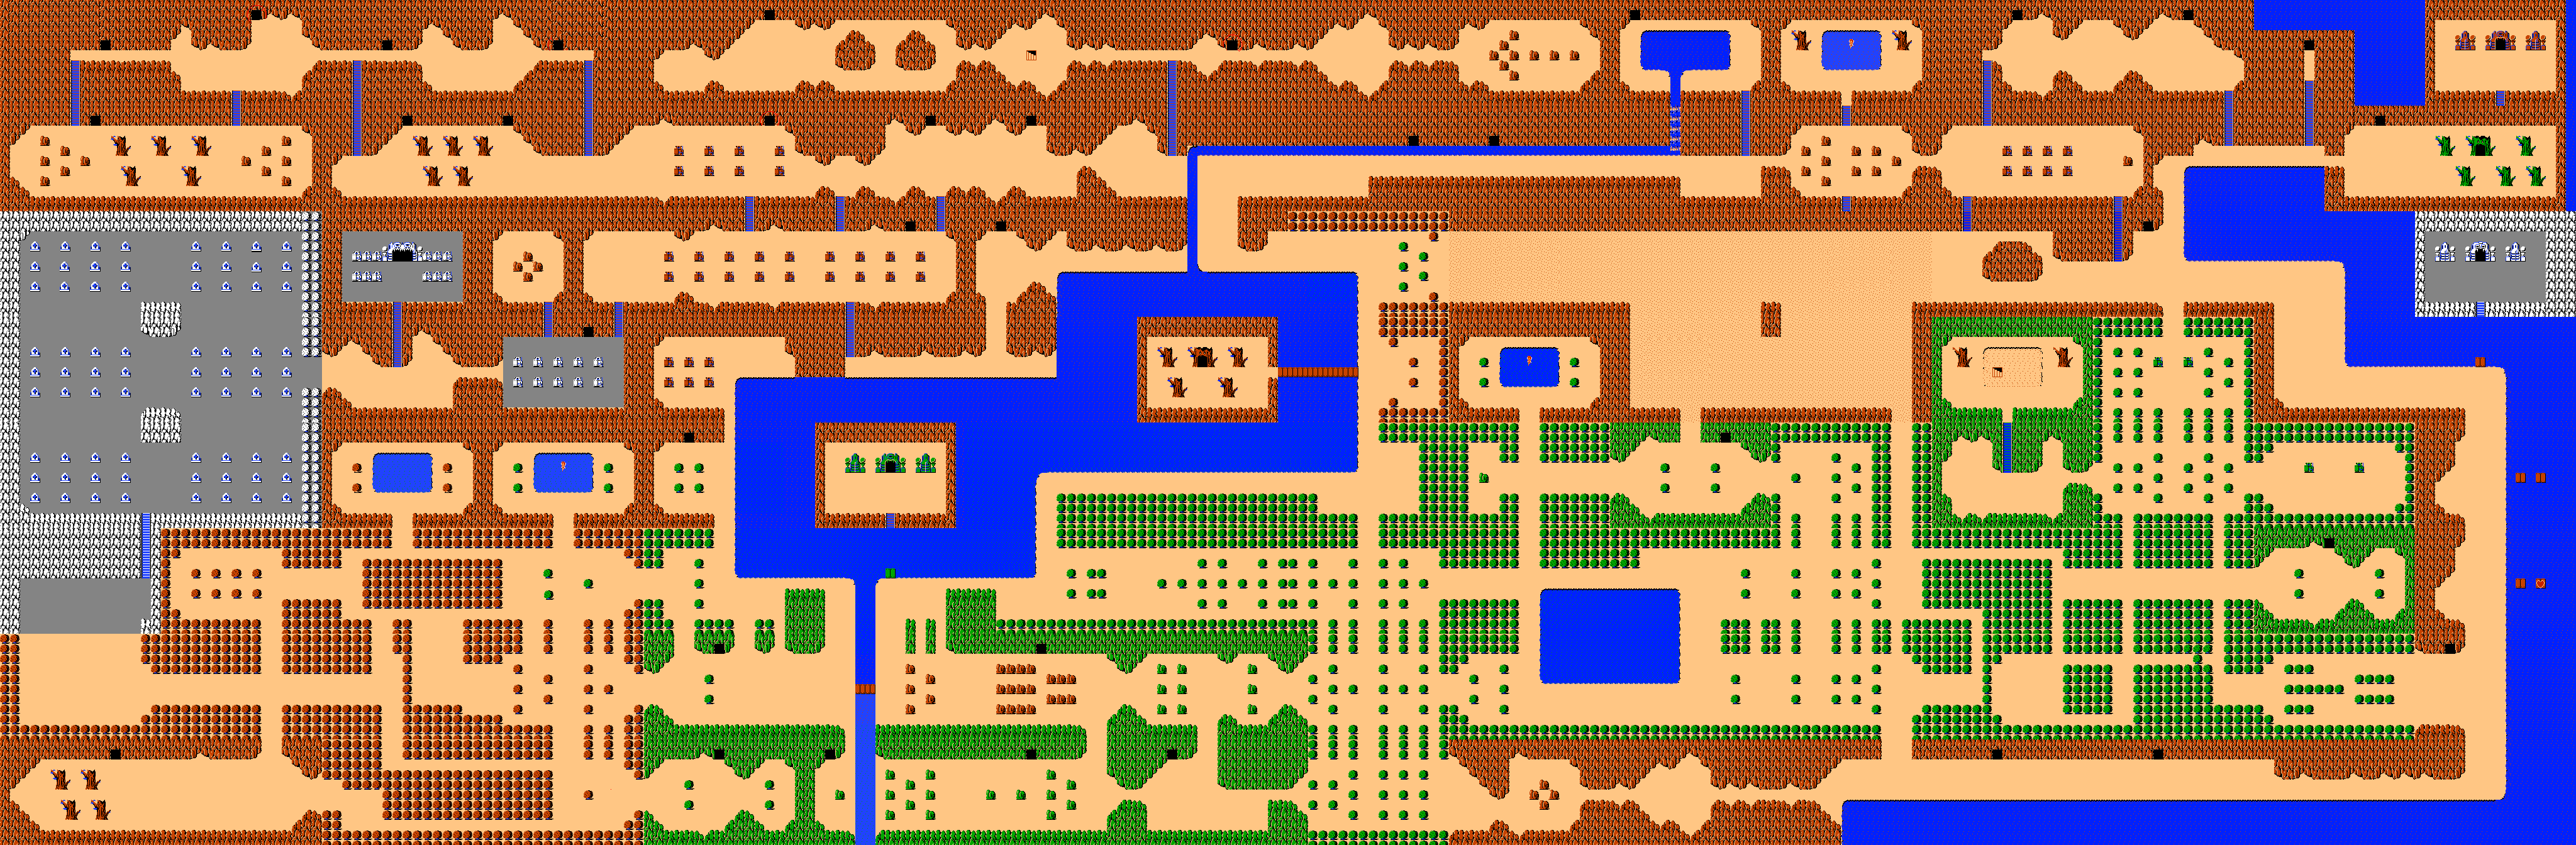 legend of zelda quest 2 map